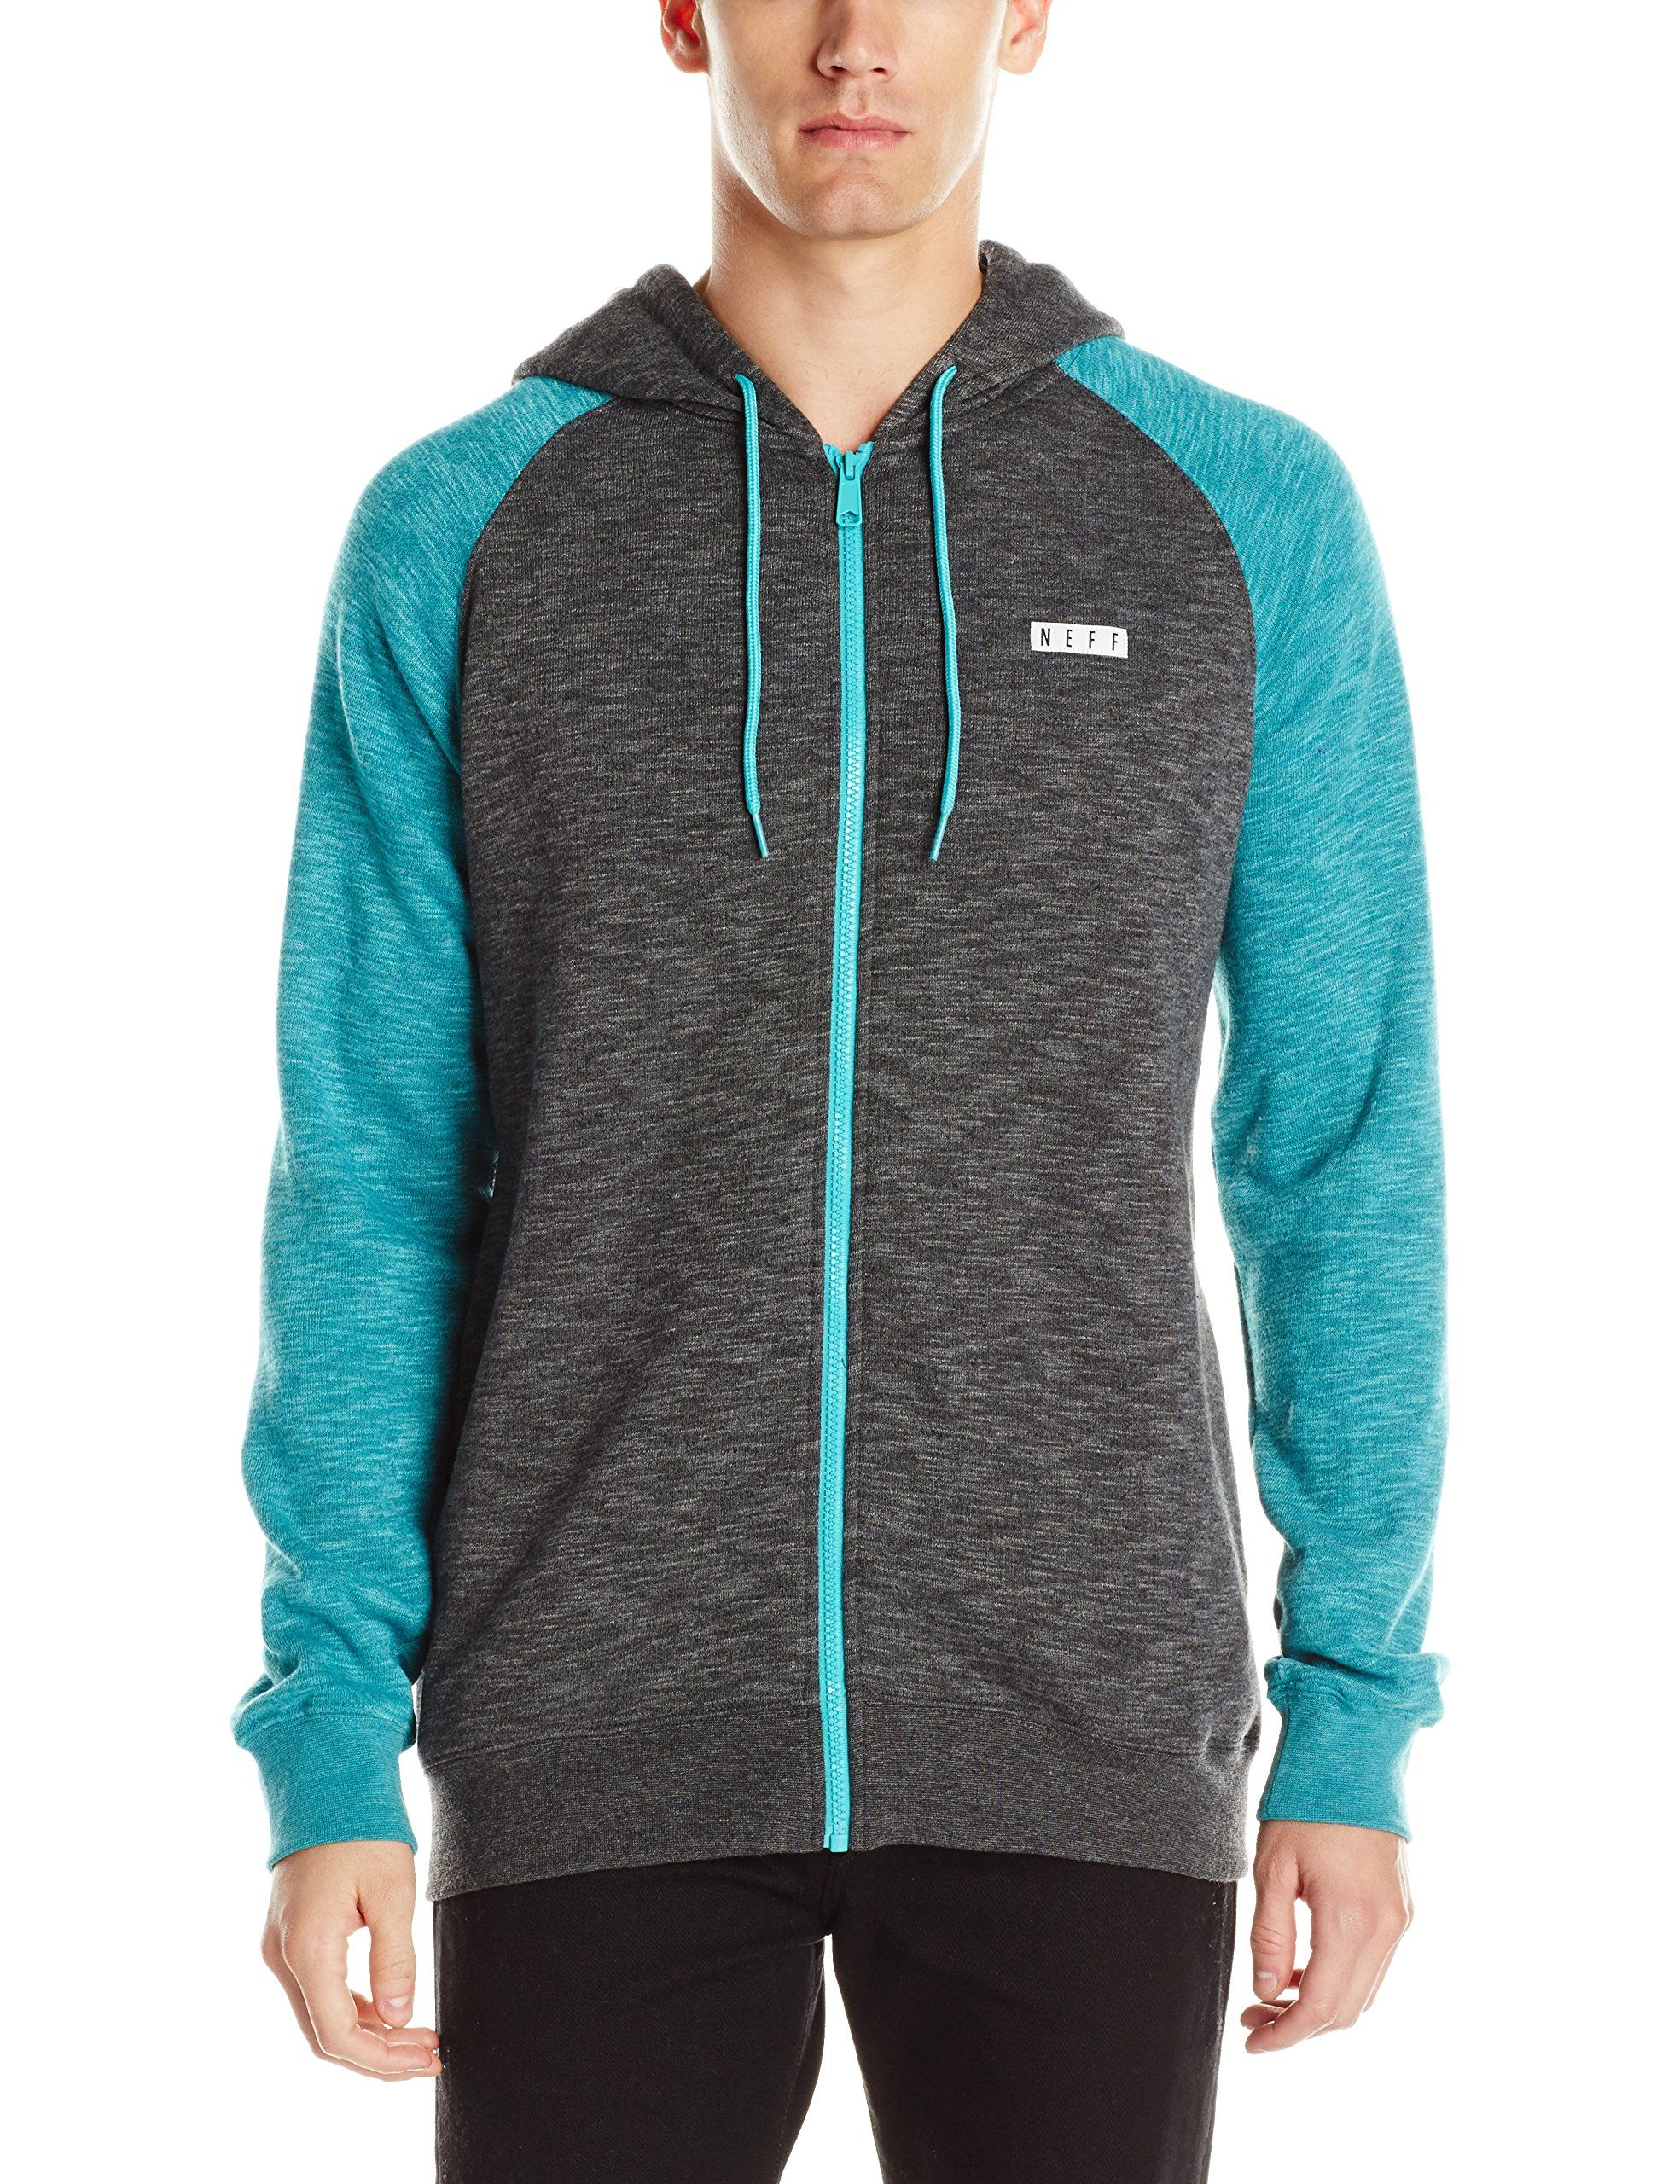 Neff menus daily zip hoodie turquoise heather xxlarge apparel